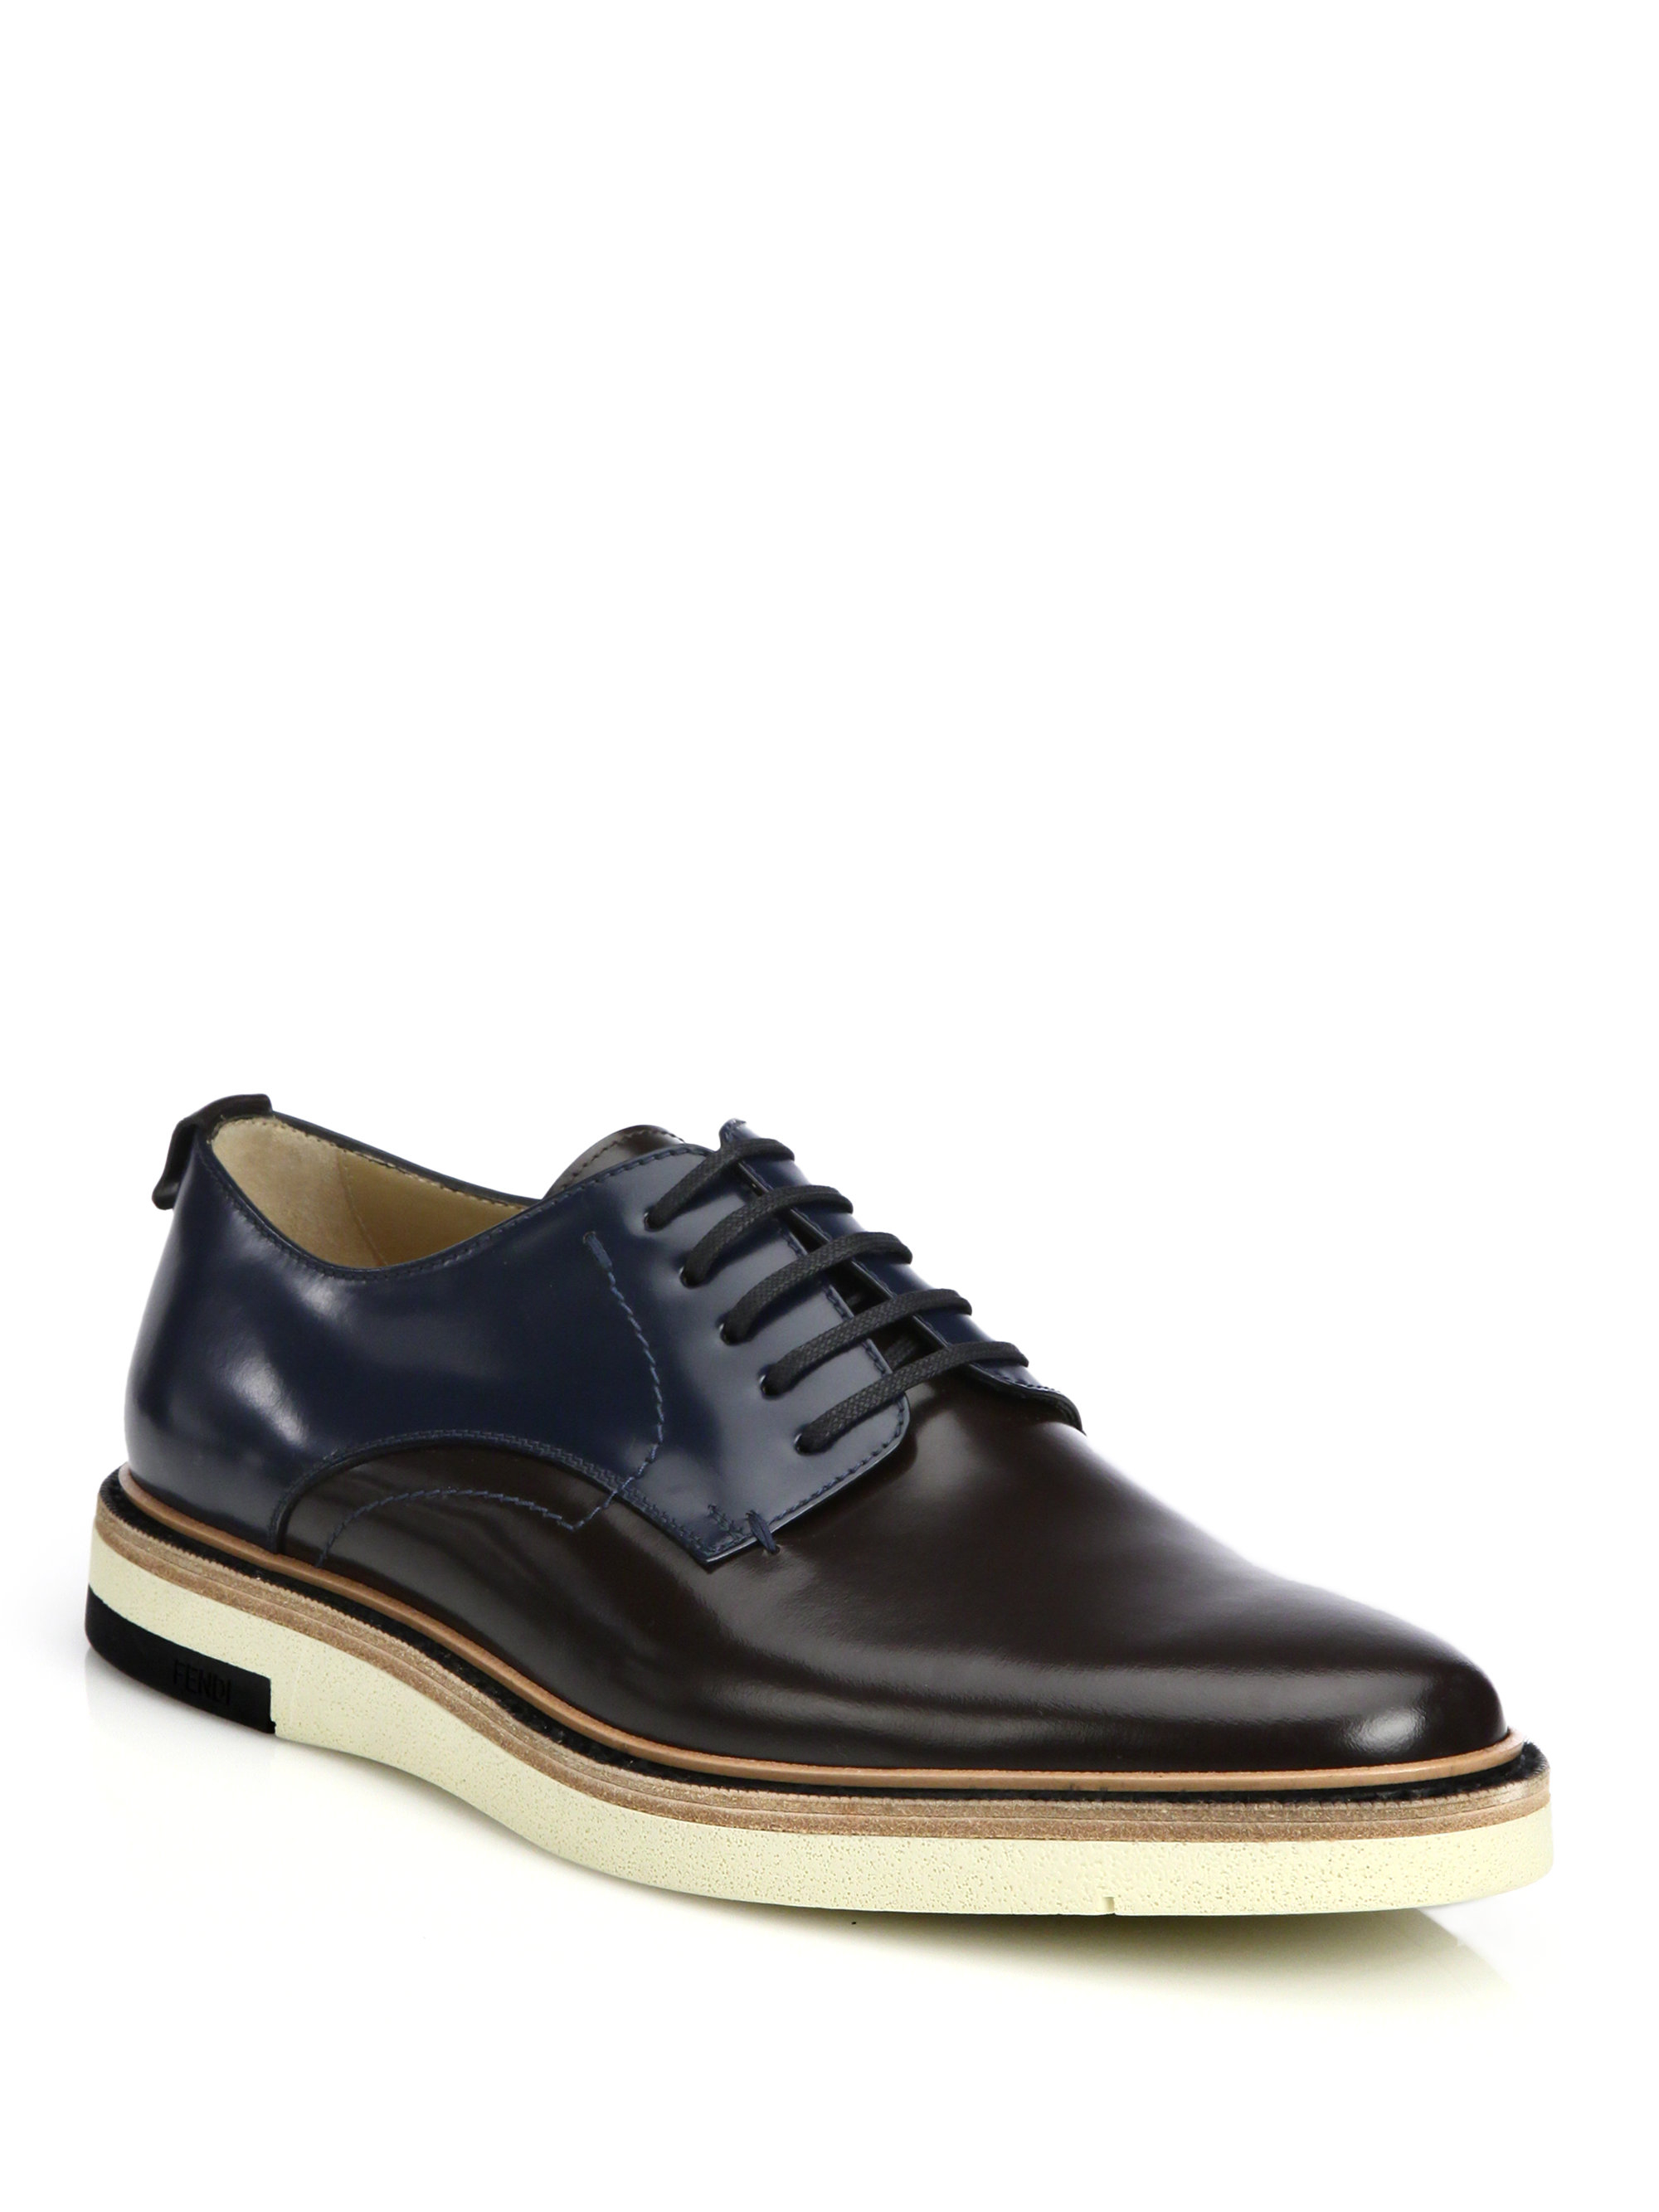 a326bacd84506 Lyst - Fendi Colorblocked Leather Lace-Up Hunting Shoes for Men